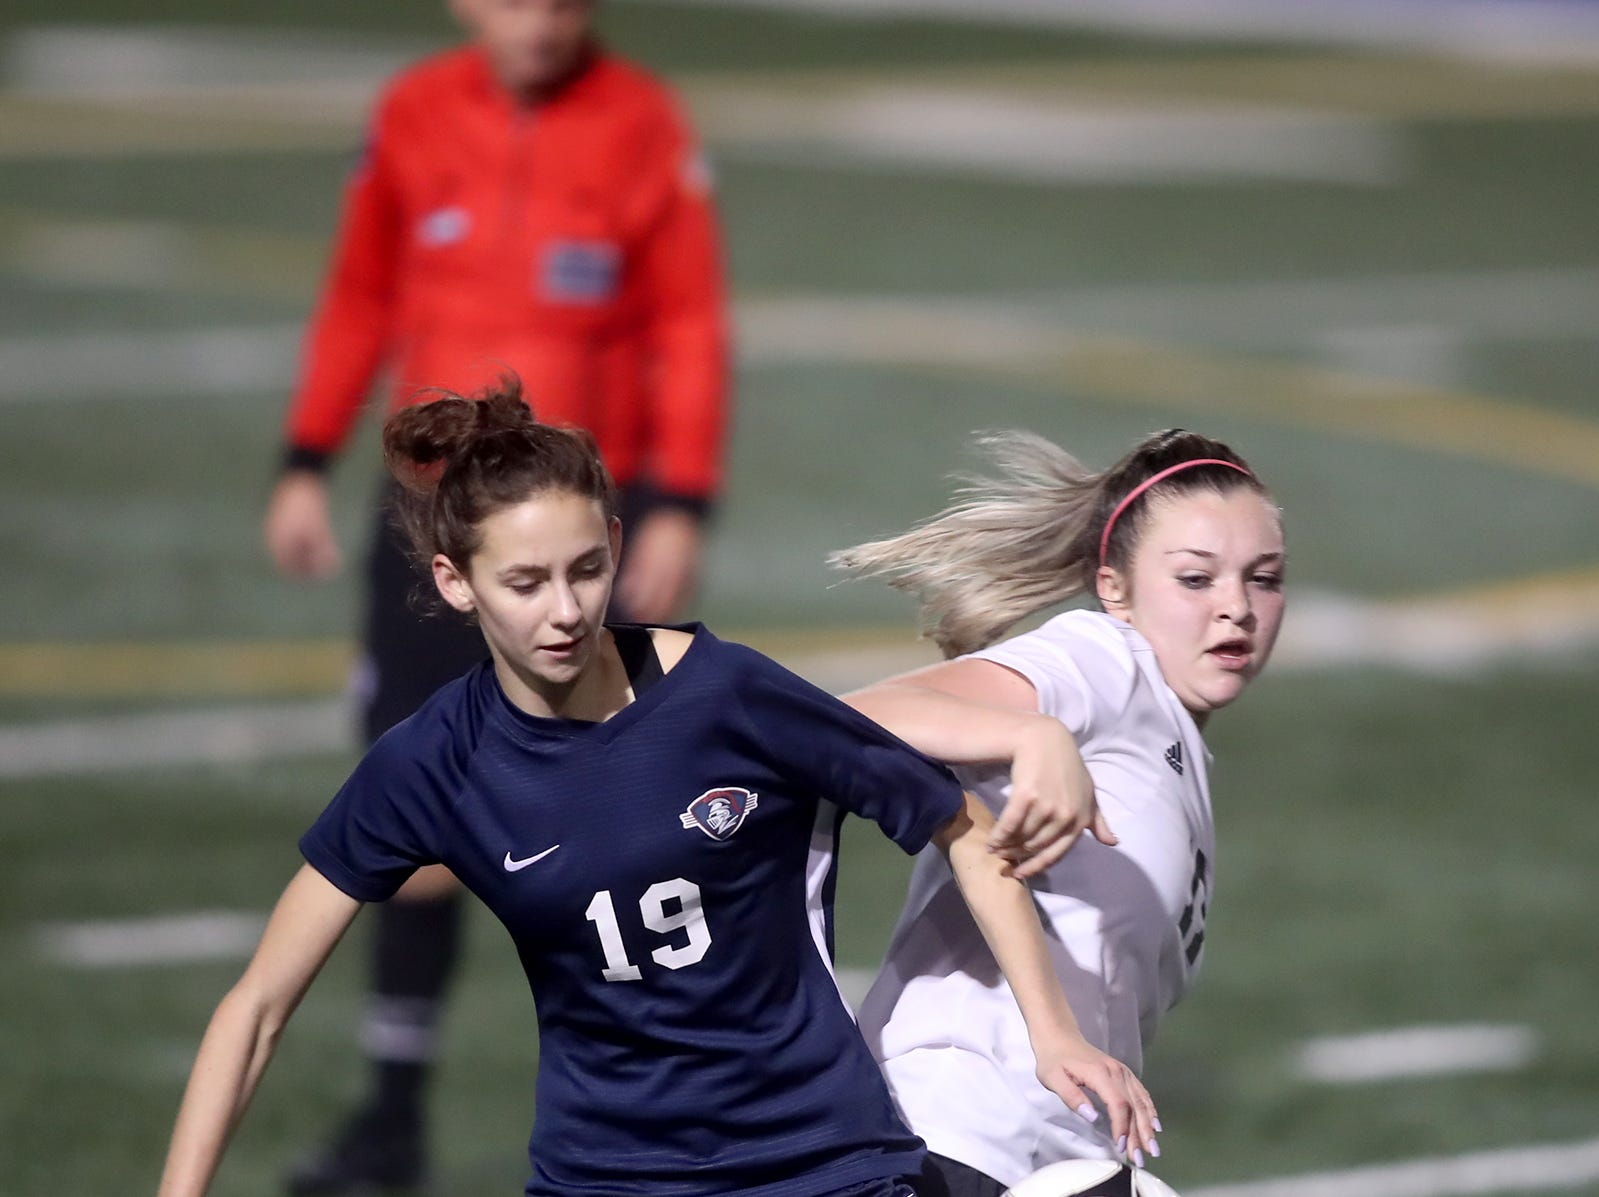 Klahowya lost to King's Way in the 2018 Girls Soccer State Championship 1A semifinal game at Shoreline Stadium on Friday, November 16, 2018.